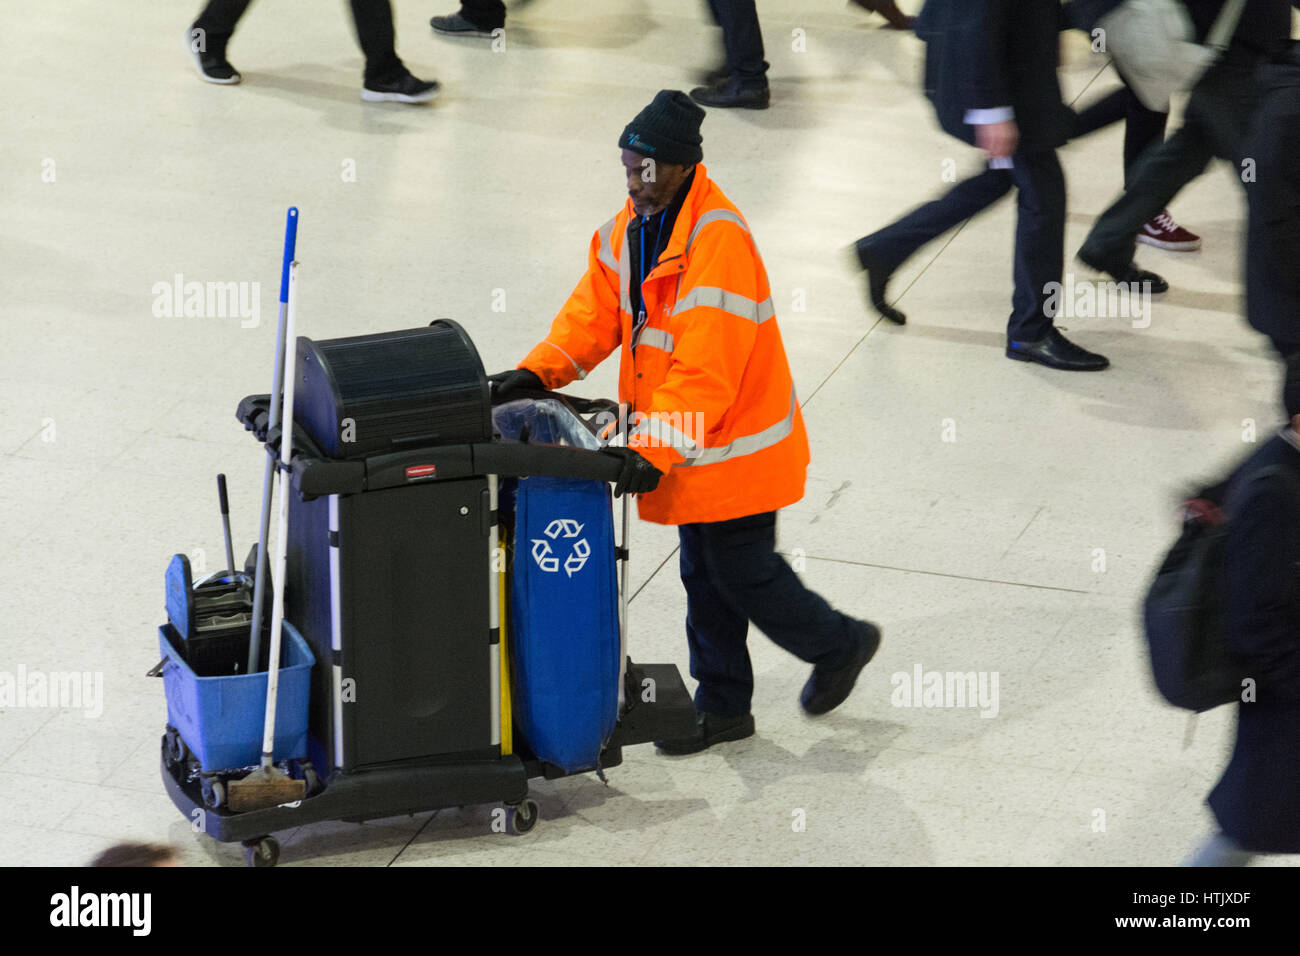 An elderly station cleaner at Waterloo Station during rush-hour, London, SE1, UK - Stock Image